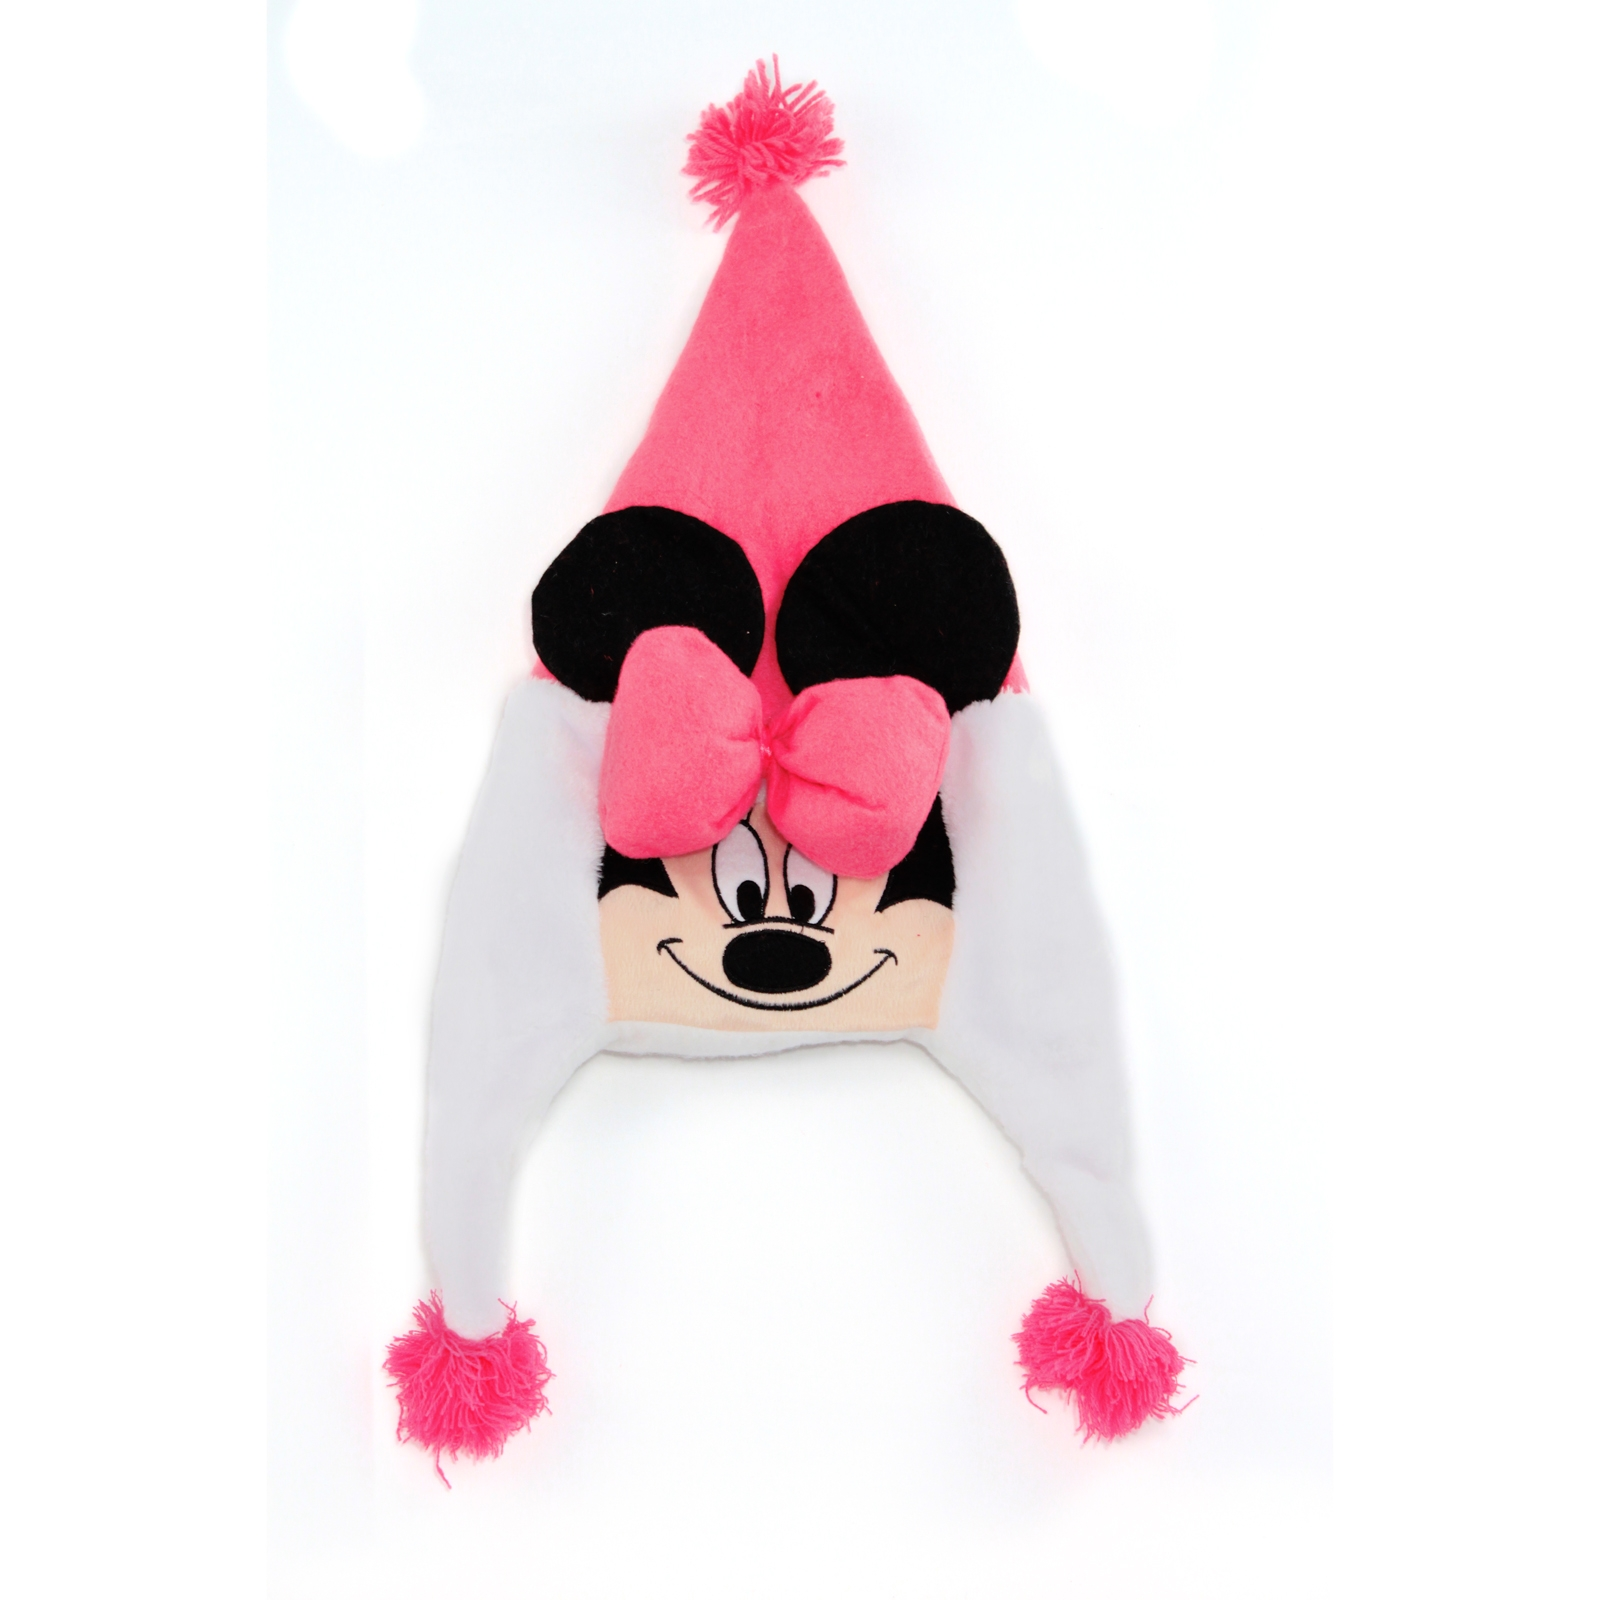 Disney Minnie Mouse Plush Earflap Beanie with Pom Pom